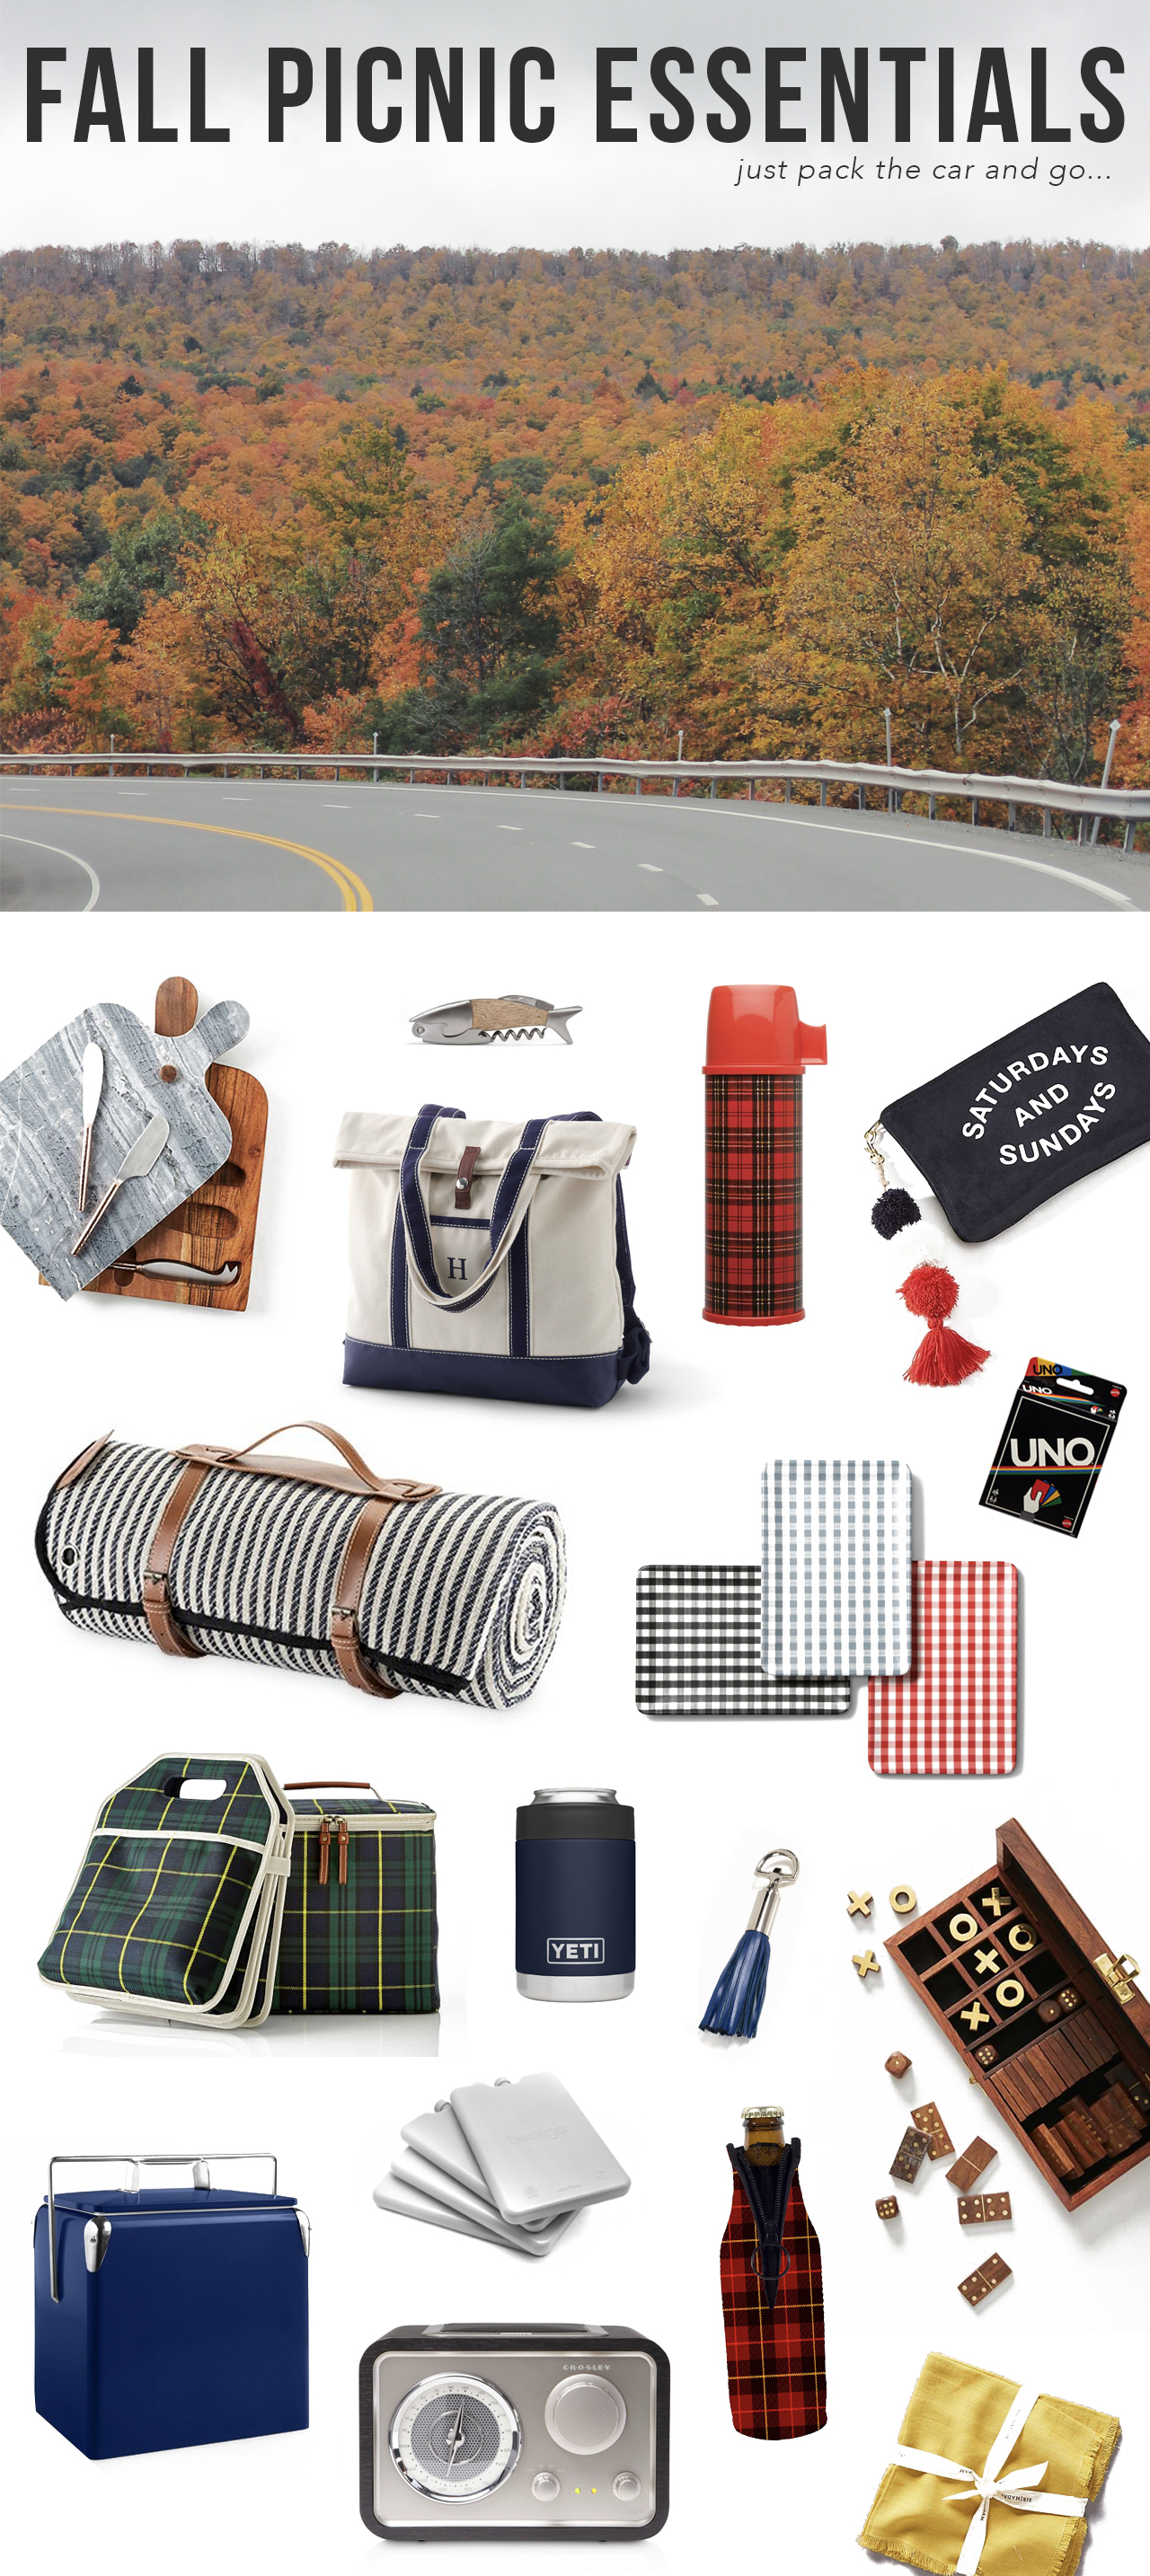 The Steele Maiden: Fall Picnic and Road Trip Essentials